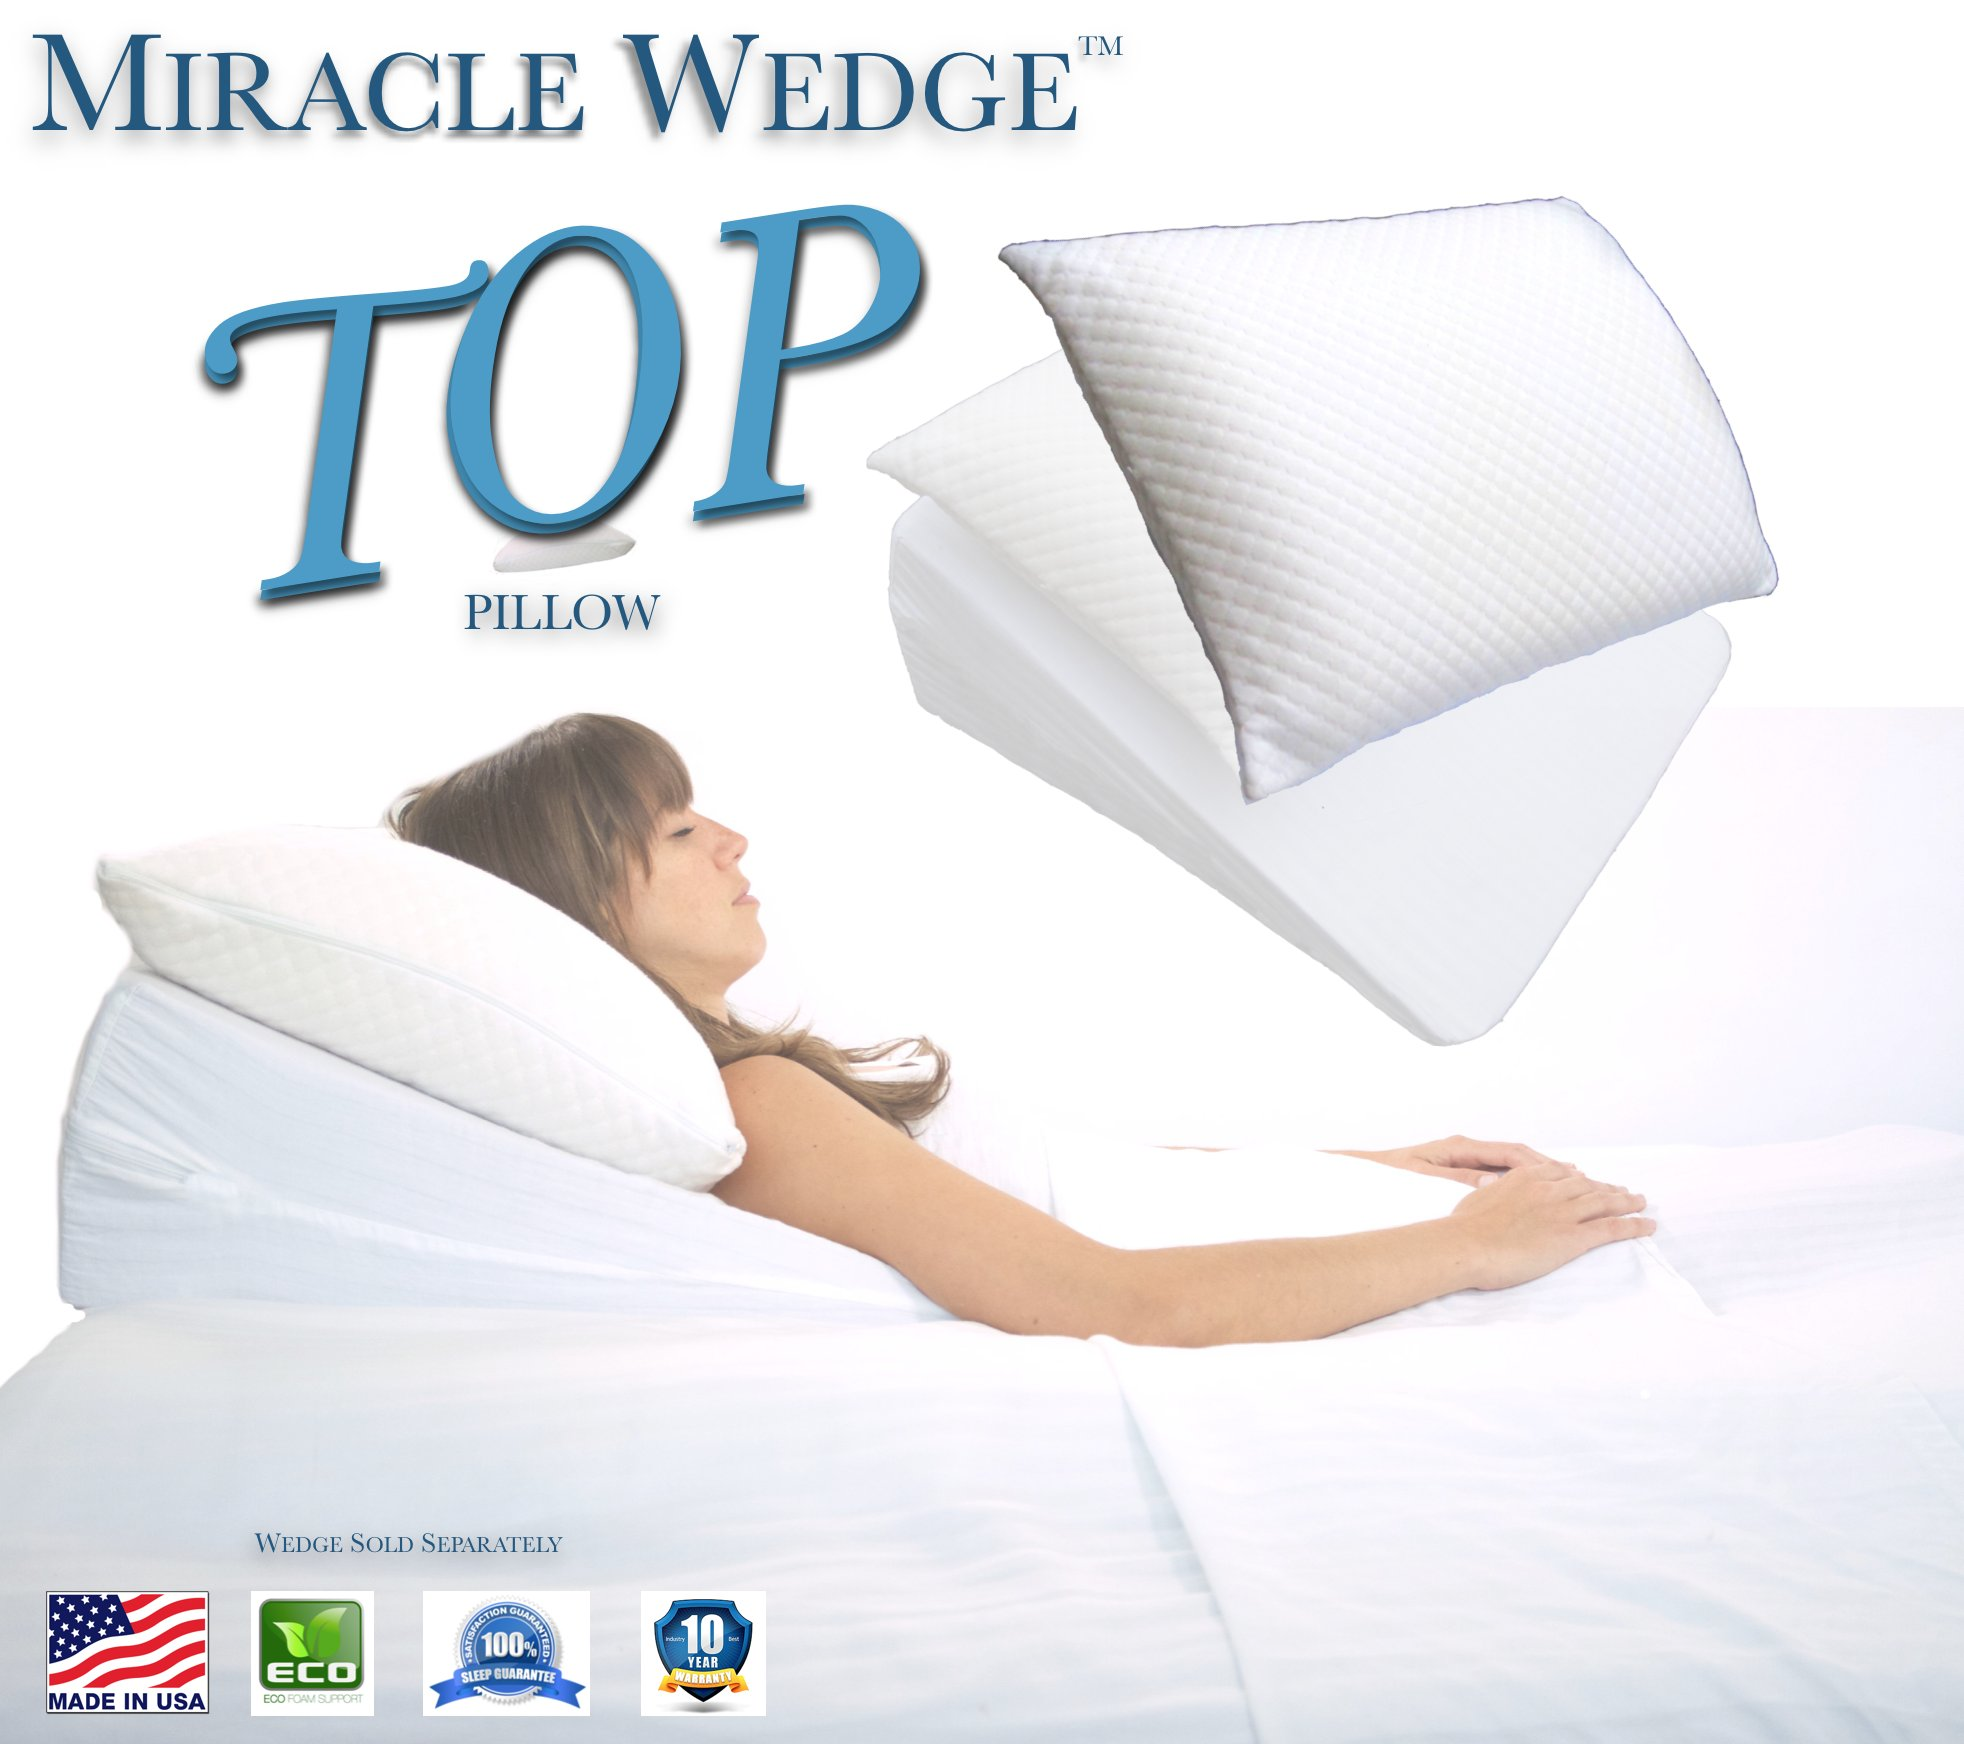 Miracle Wedge Top 18-Inch x 24-Inch x 5.5-Inch Acid Reflux Topper Memory Foam Pillow with Removable Cover